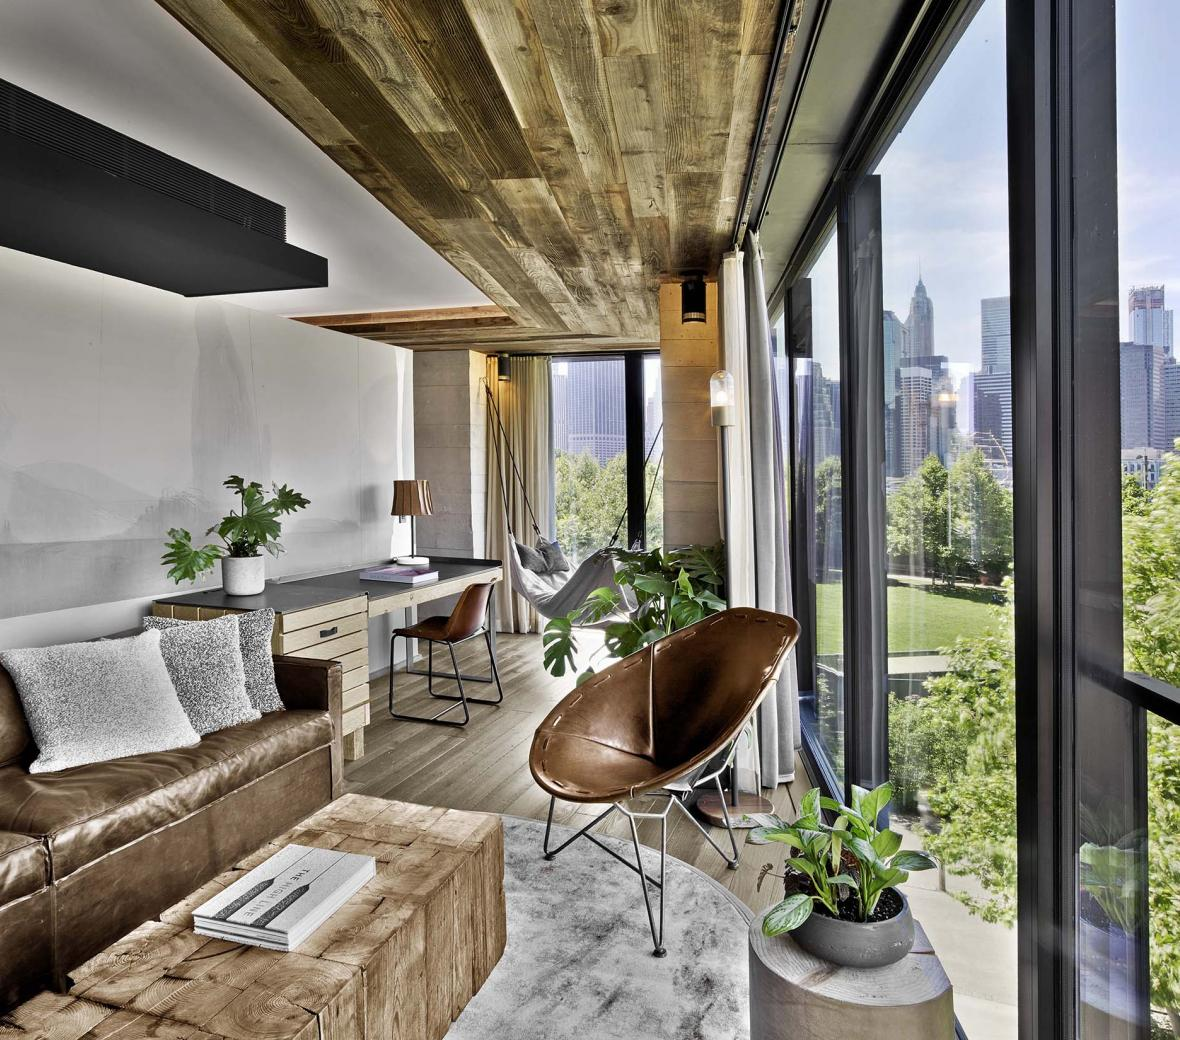 brooklyn bridge suite with view of NYC skyline